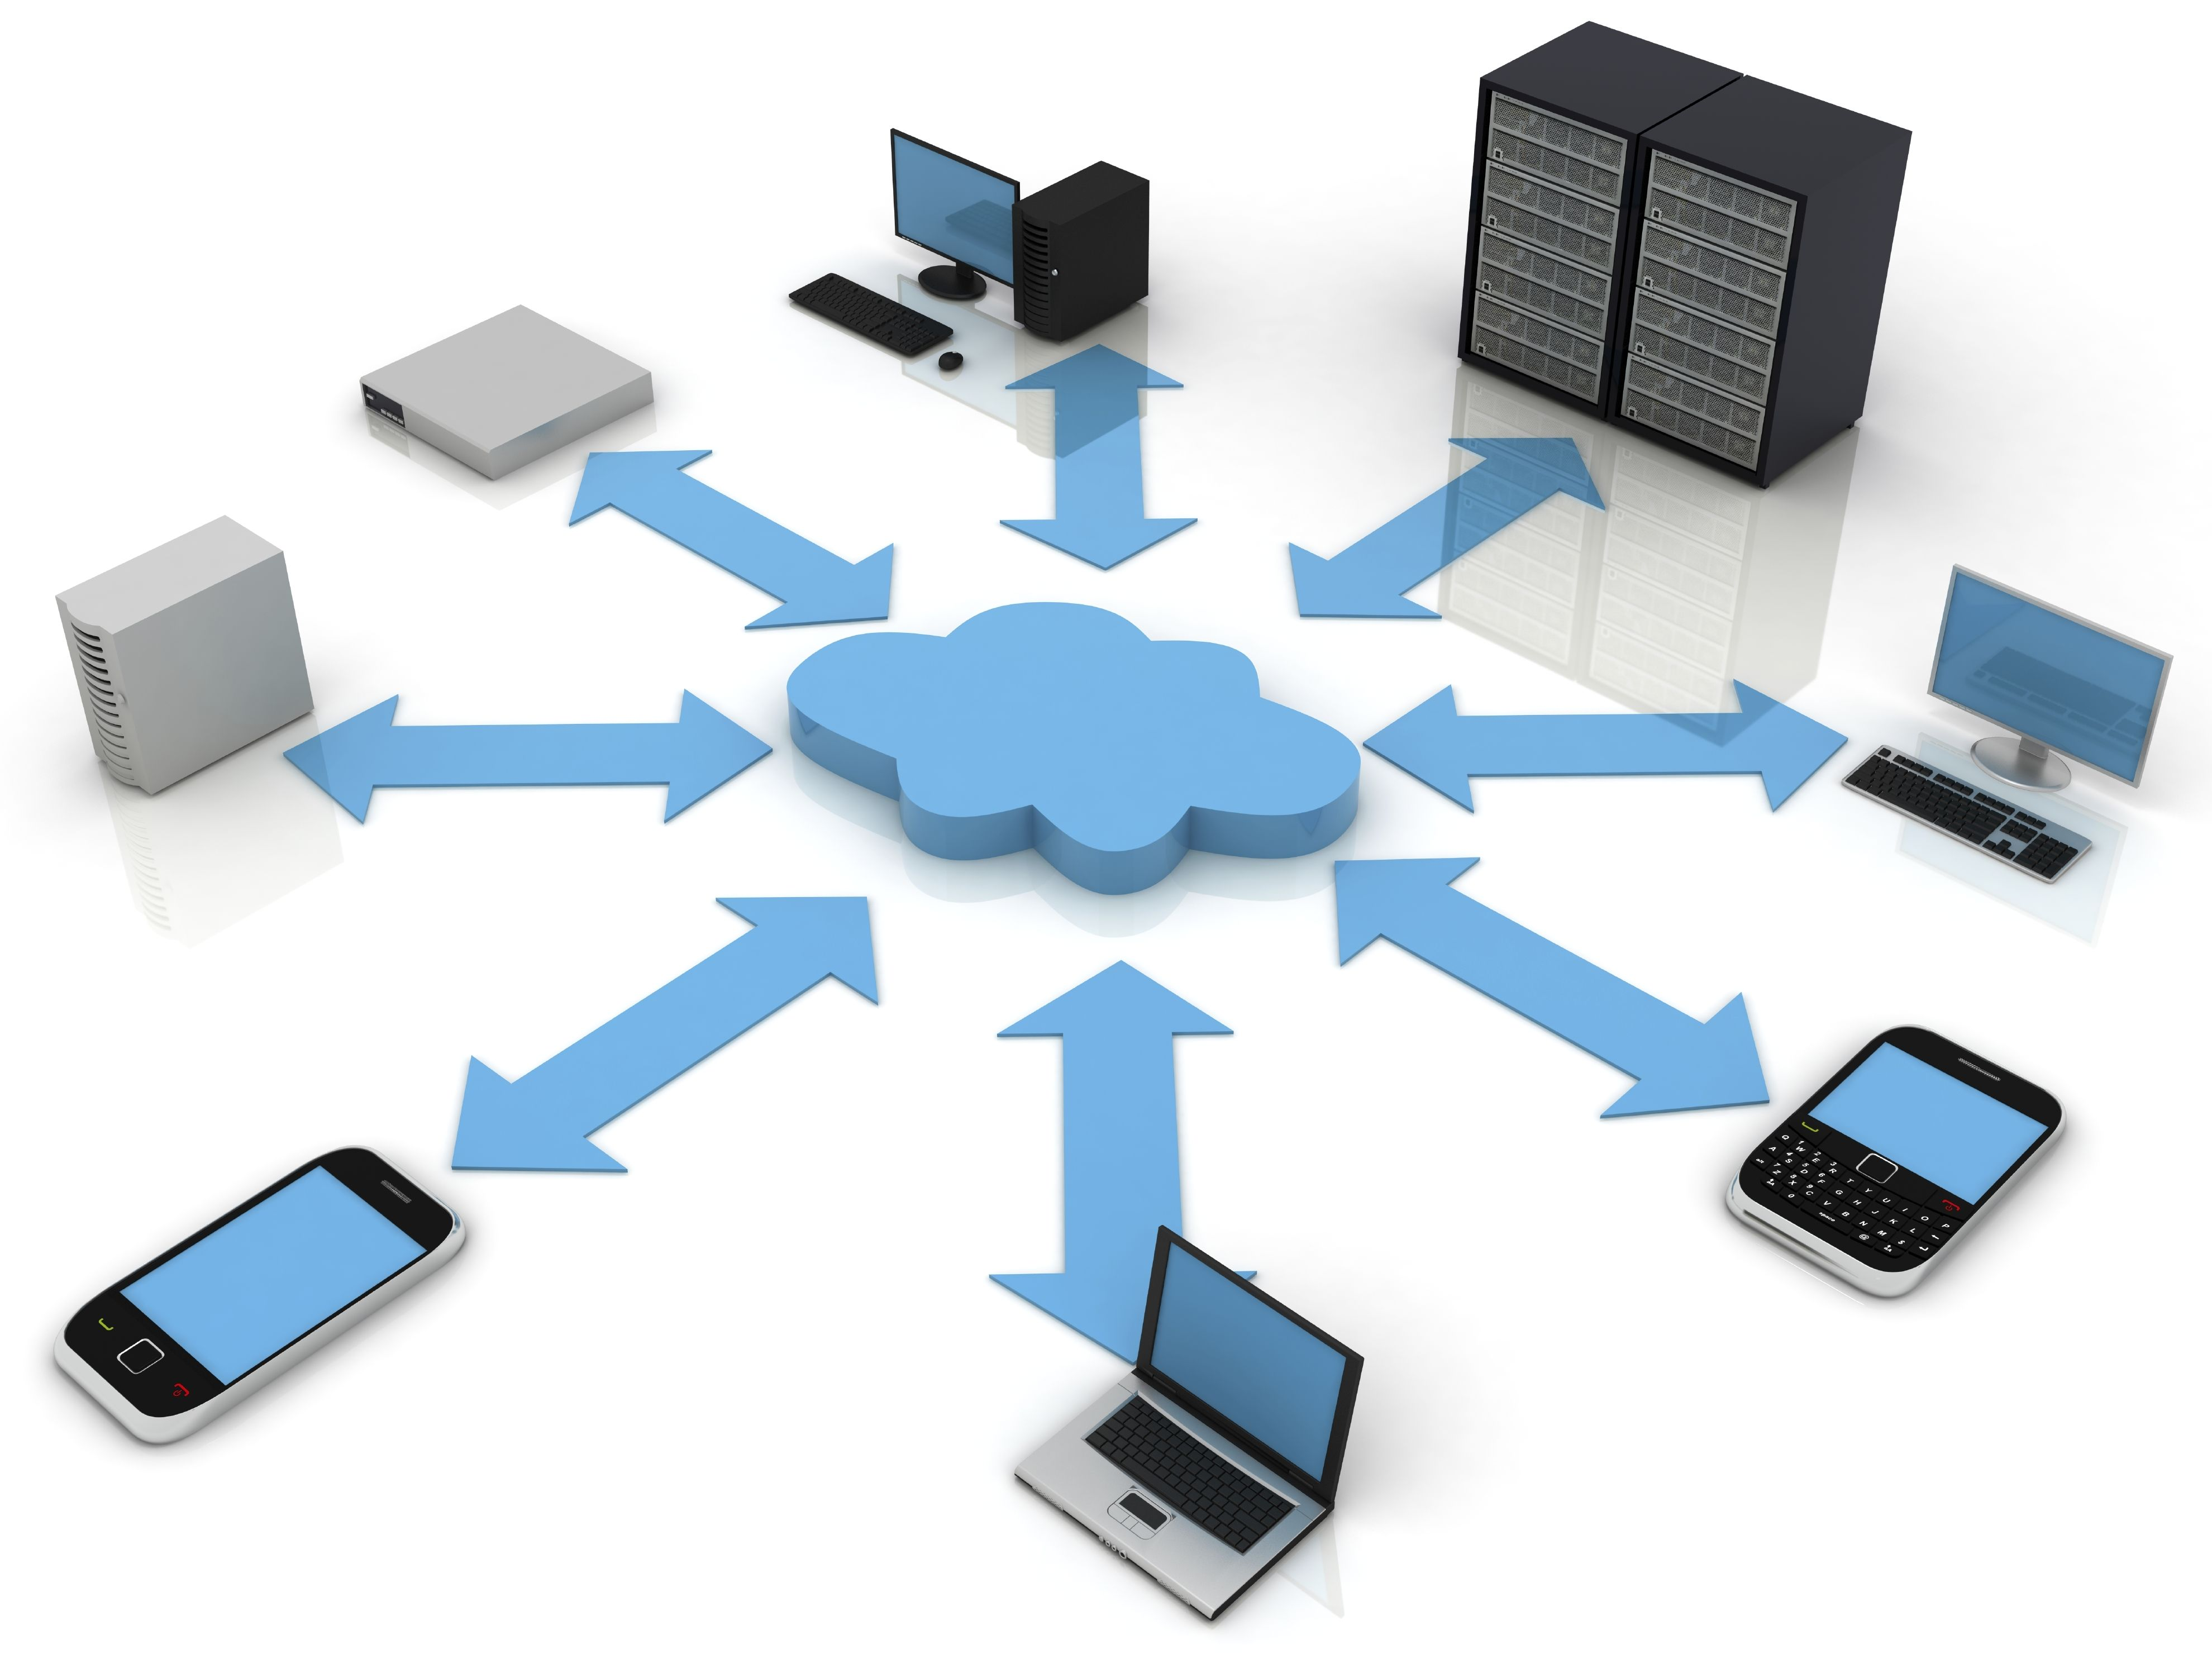 Unify Infrastructure Management for hybrid cloud